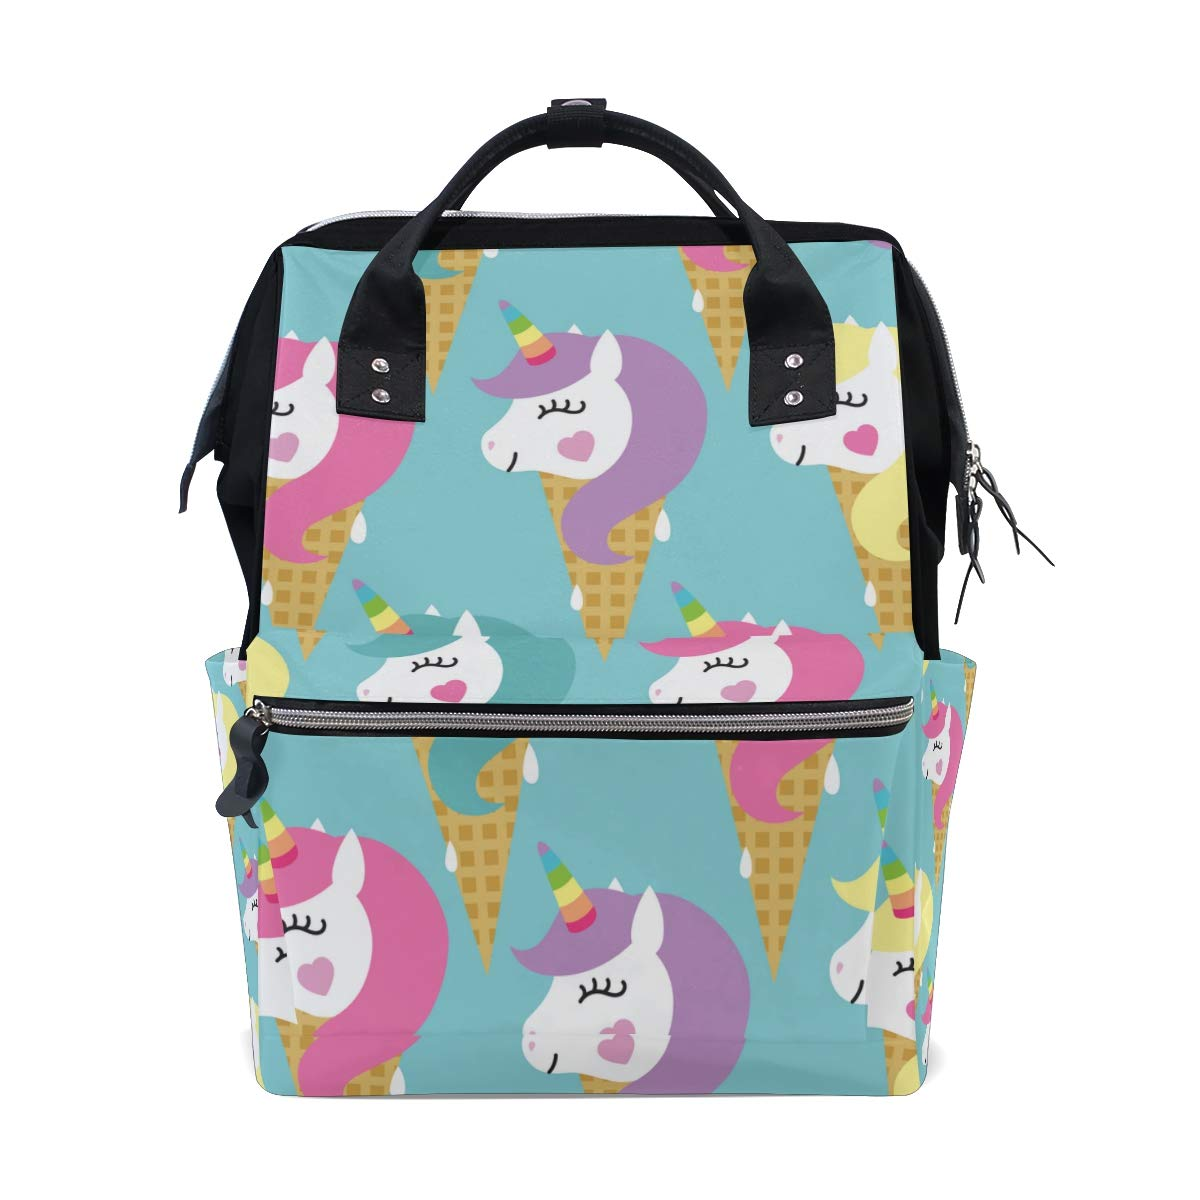 A Seed Backpack Baby Diaper Bag Unicorn Cute for Girls Women Tote Daypack Bookbag